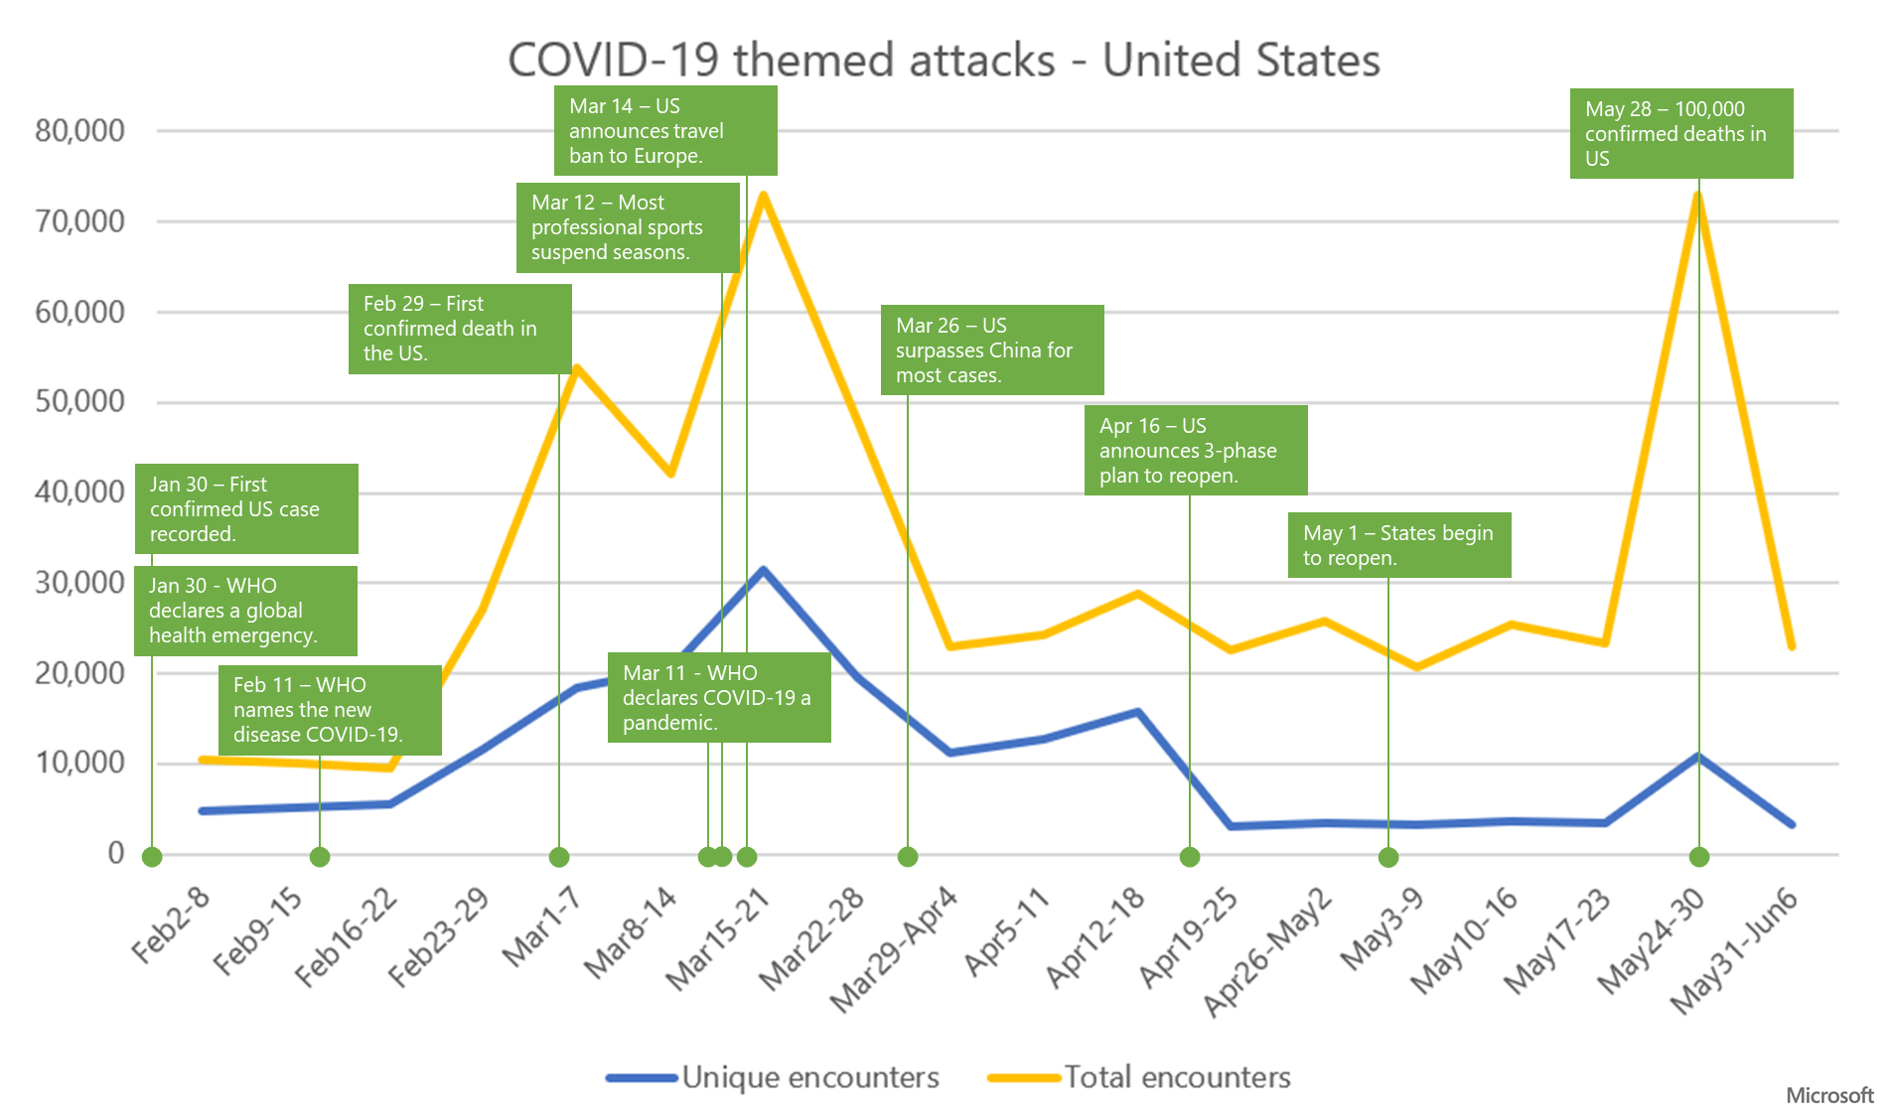 Graph showing trend of COVID-19 themed attacks and mapping key events during the outbreak in the United States